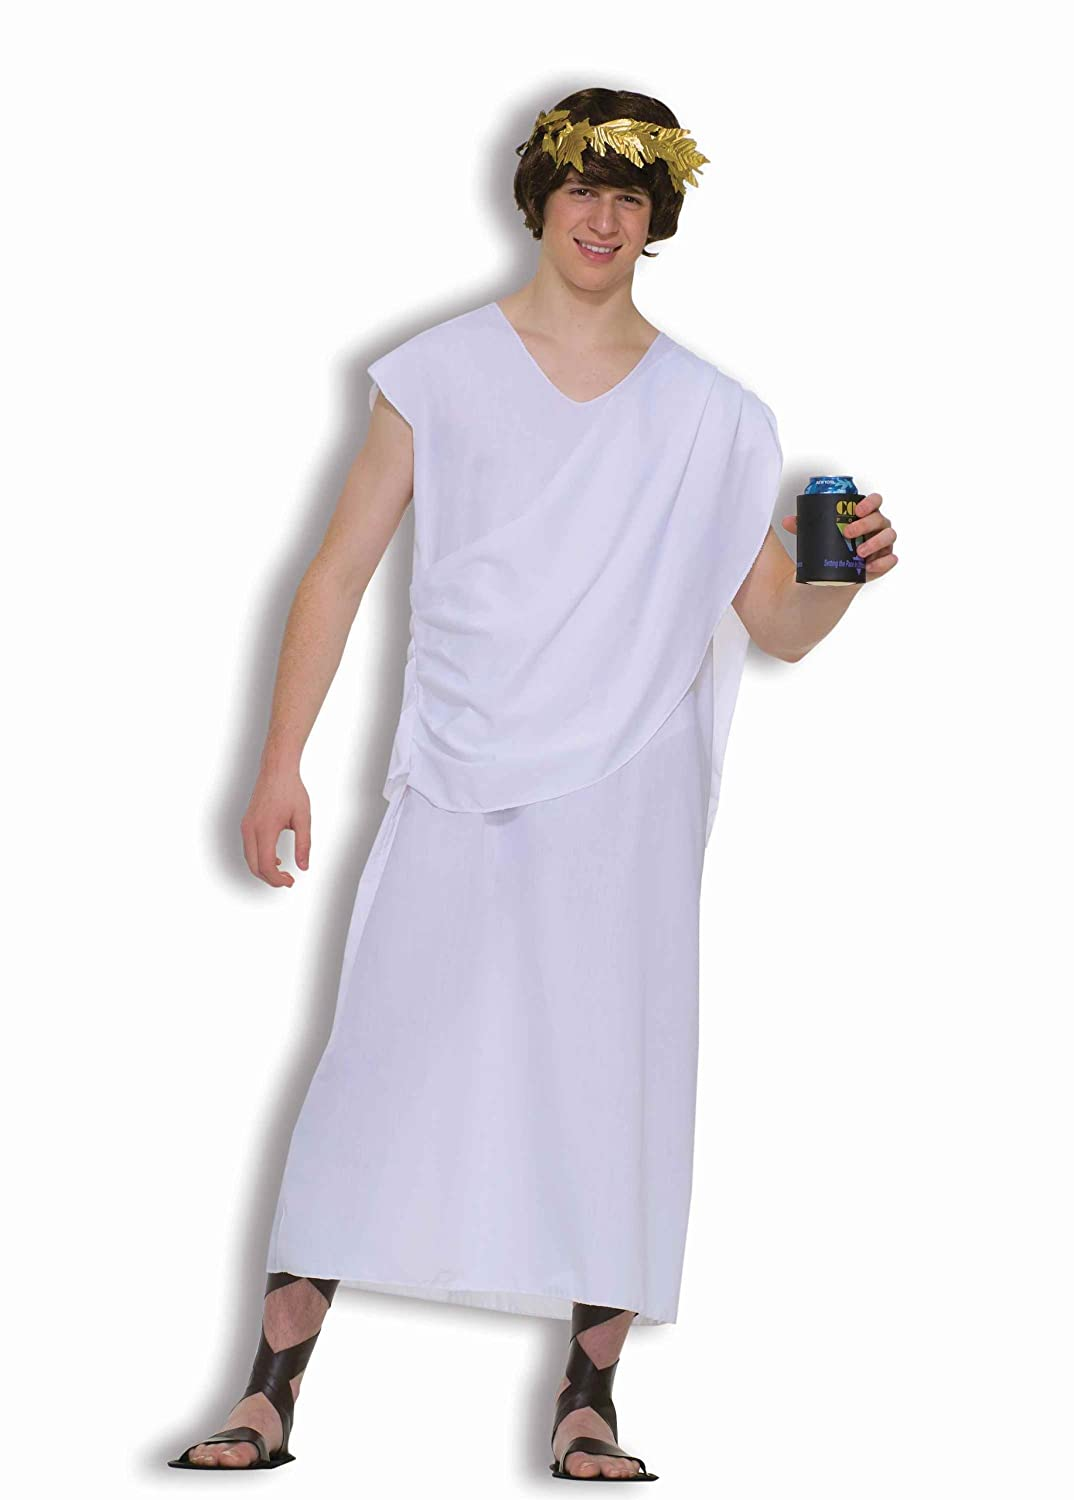 Forum Novelties Men's Teenz Unisex Costume Toga the zombies колин бланстоун род аргент the zombies featuring colin blunstone